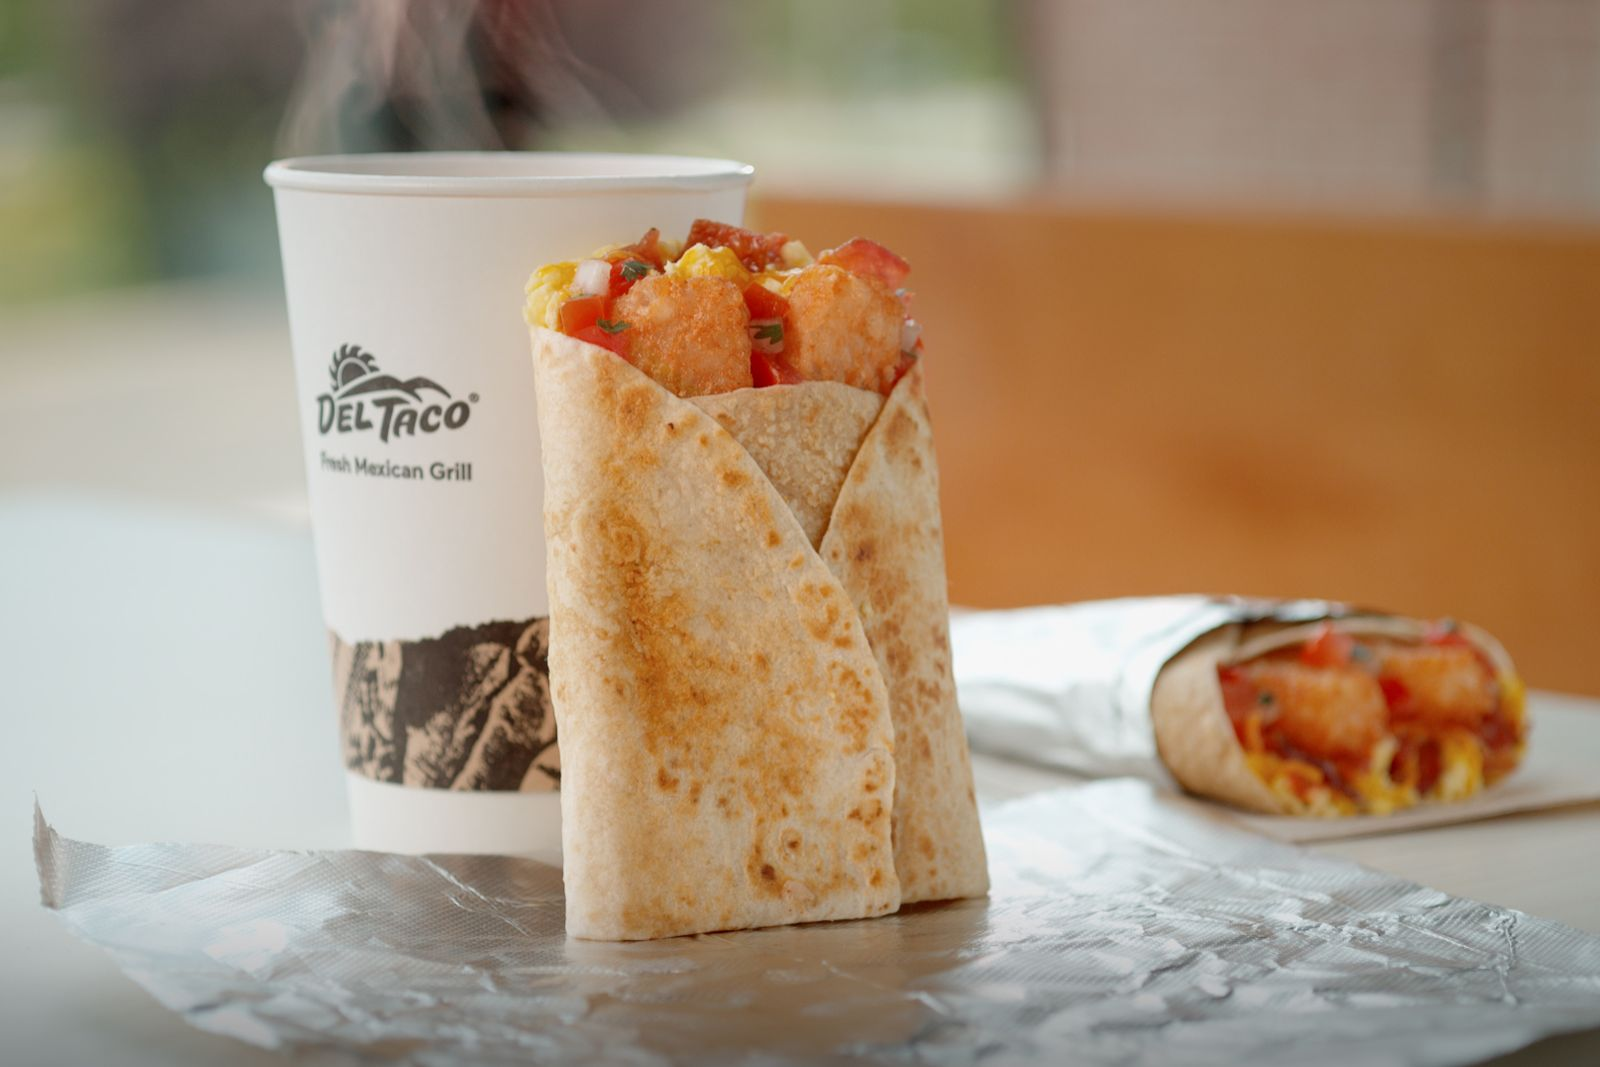 Del Taco's New Breakfast Toasted Wrap